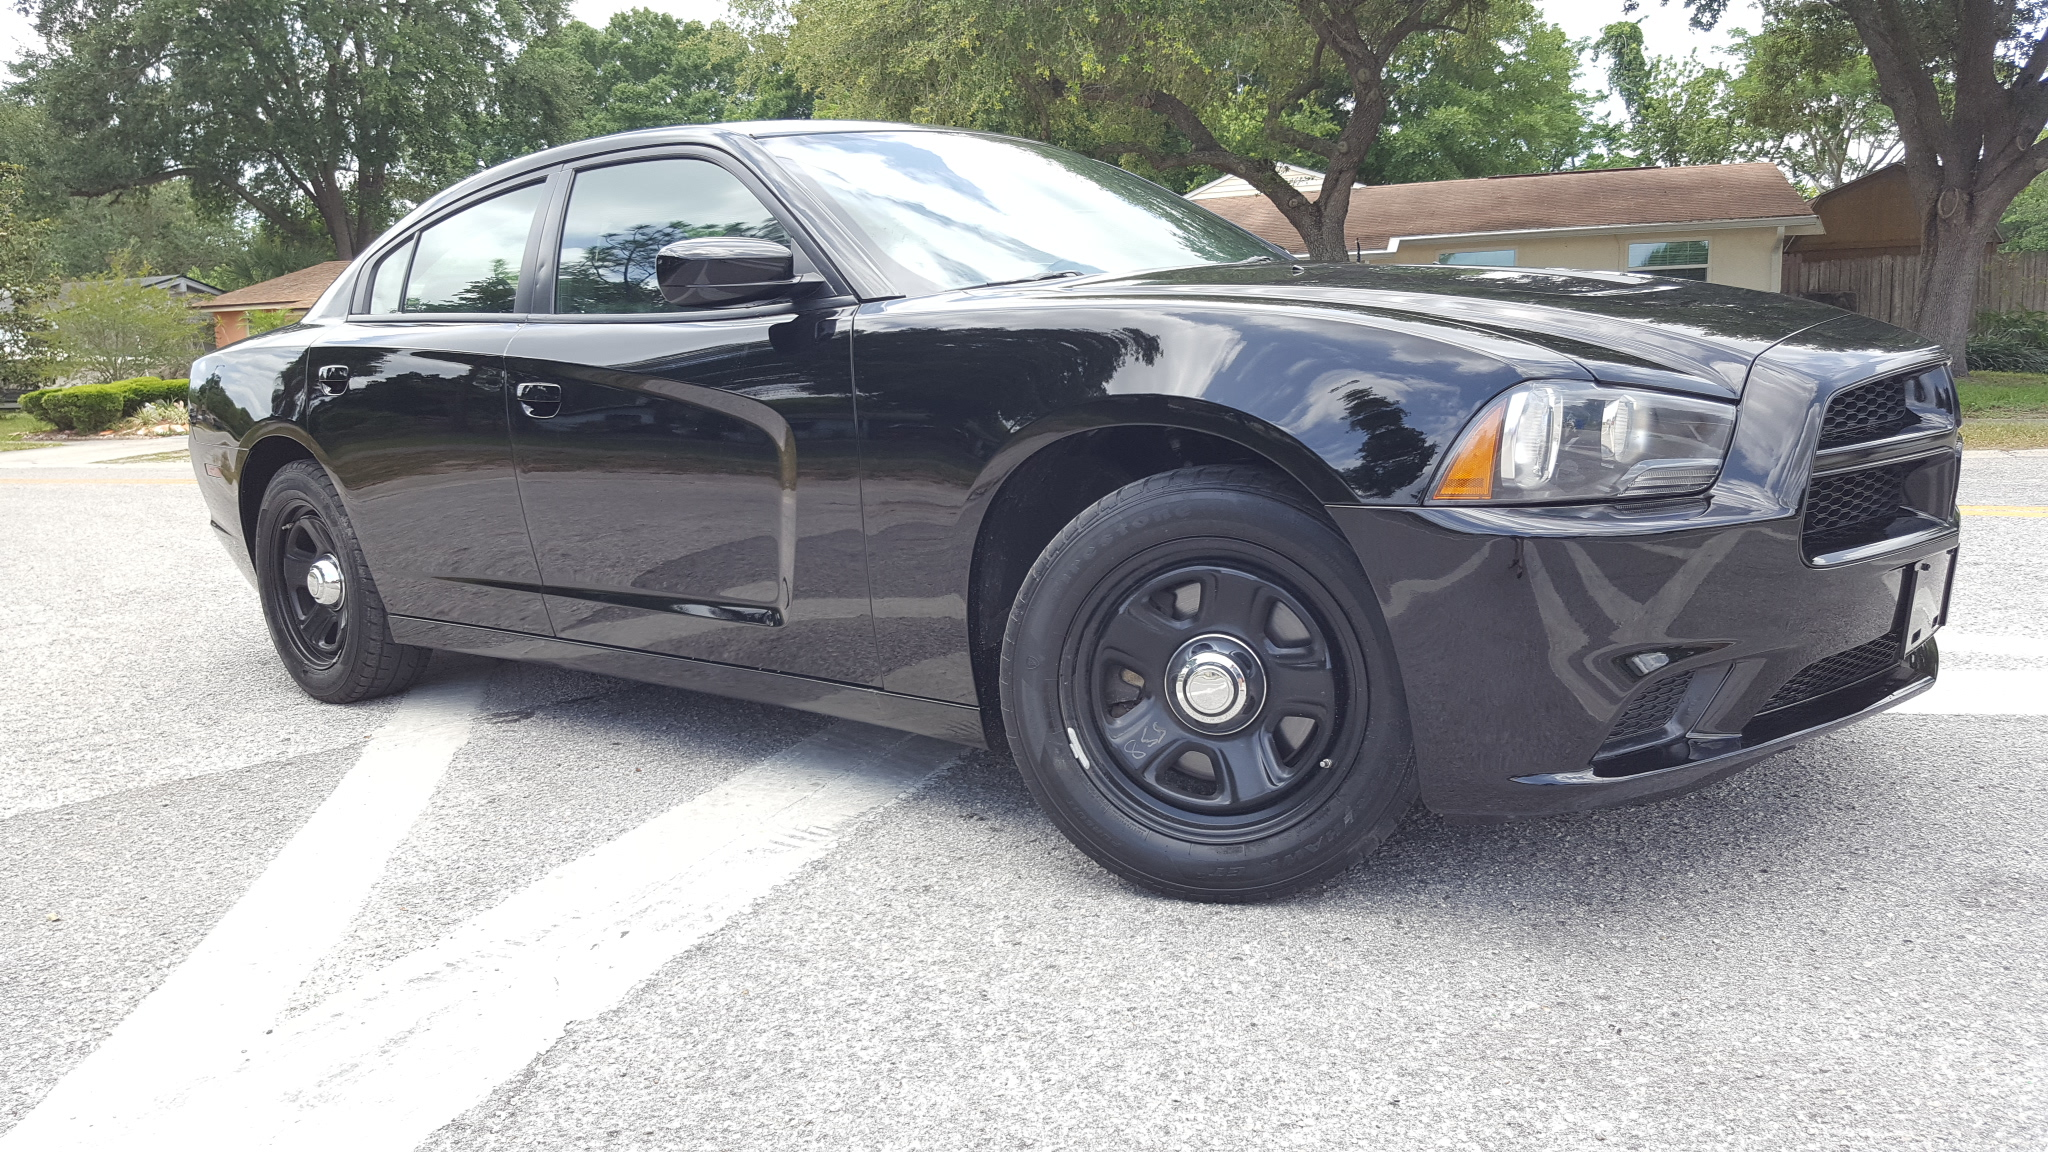 2011 dodge charger ahb police package 99k miles thee cop shop. Cars Review. Best American Auto & Cars Review